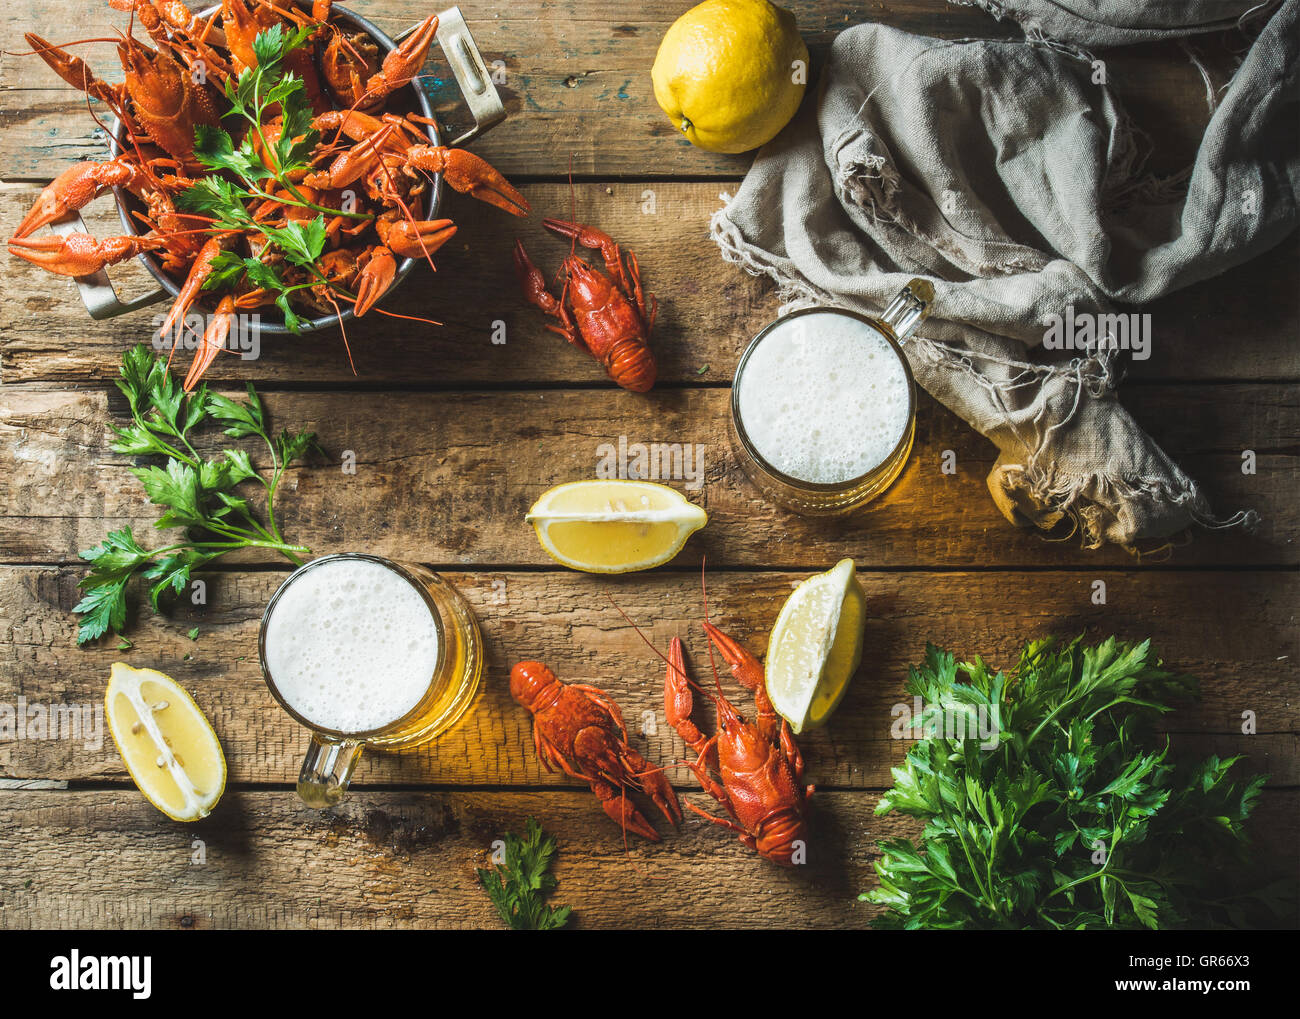 Wheat beer and boiled crayfish with lemon, parsley - Stock Image